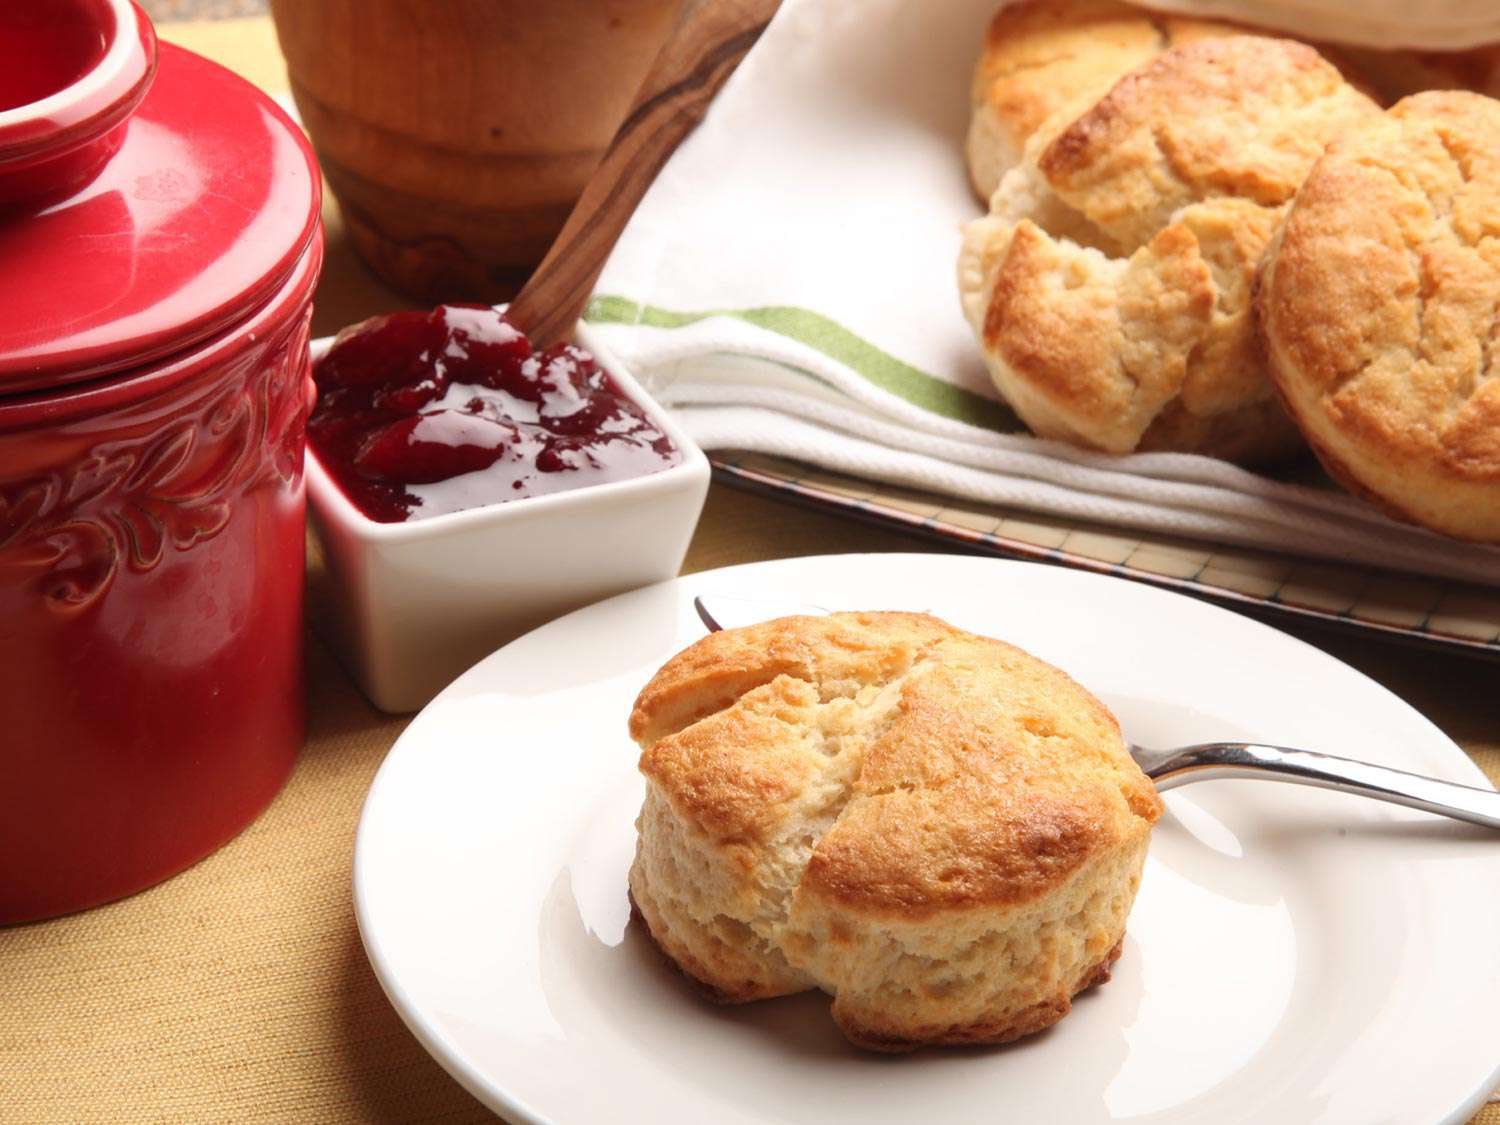 2-Ingredient Never-Fail Cream Biscuits